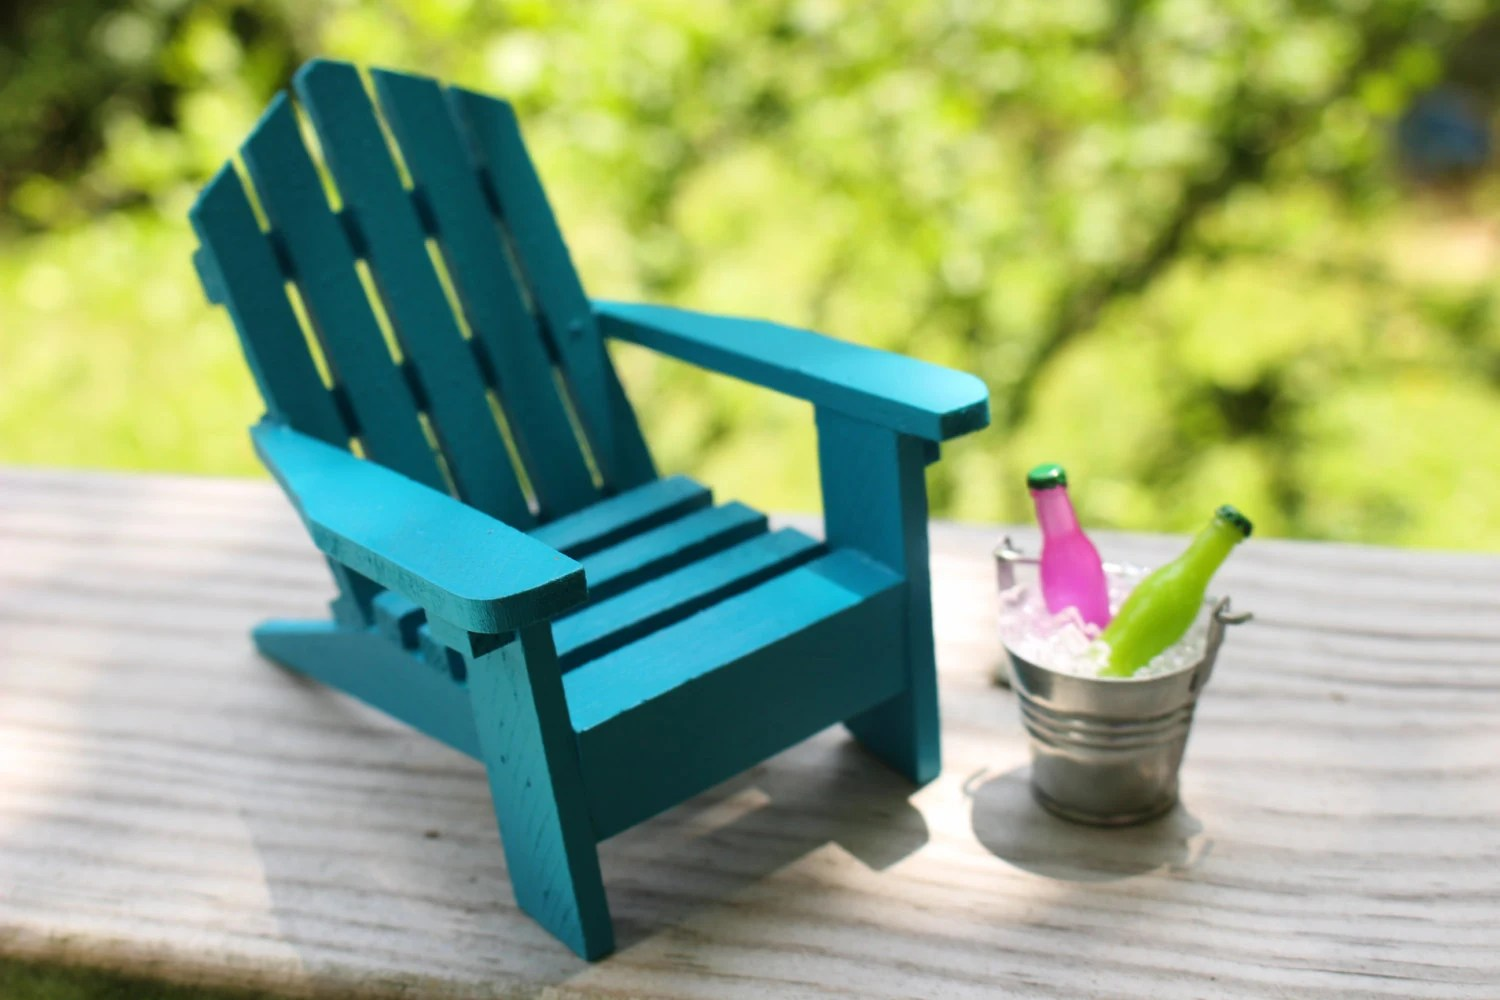 Mini Adirondack Chairs 1 Miniature Adirondack Beach Chair Tin Bucket Ice And Soda